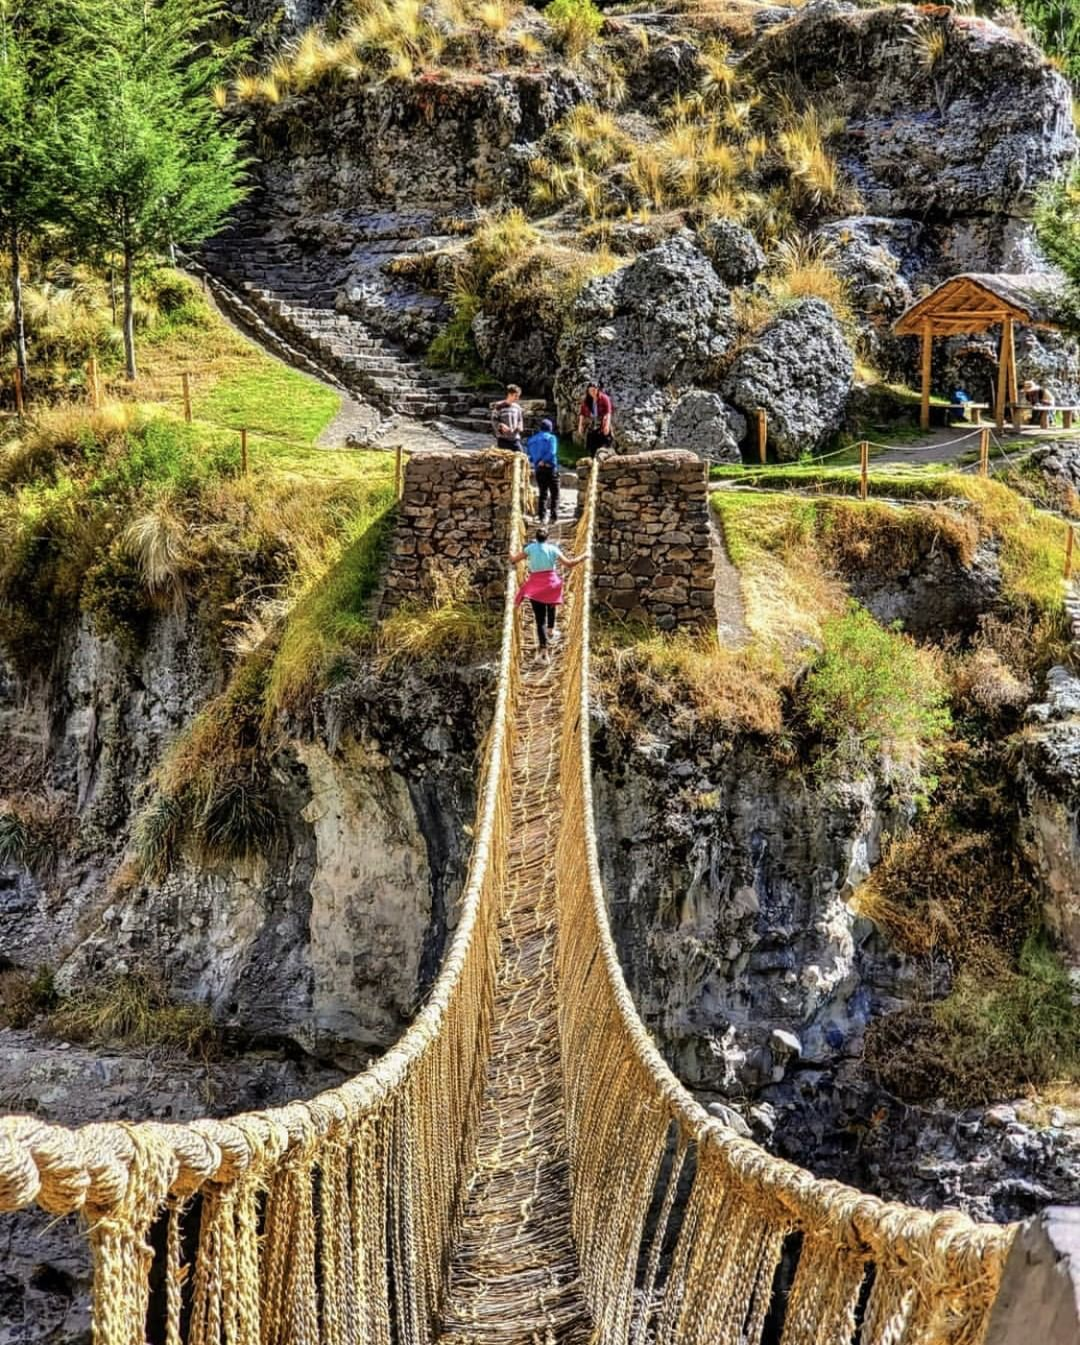 Puente Qeshuachaca. Foto: @greatescapepublishing